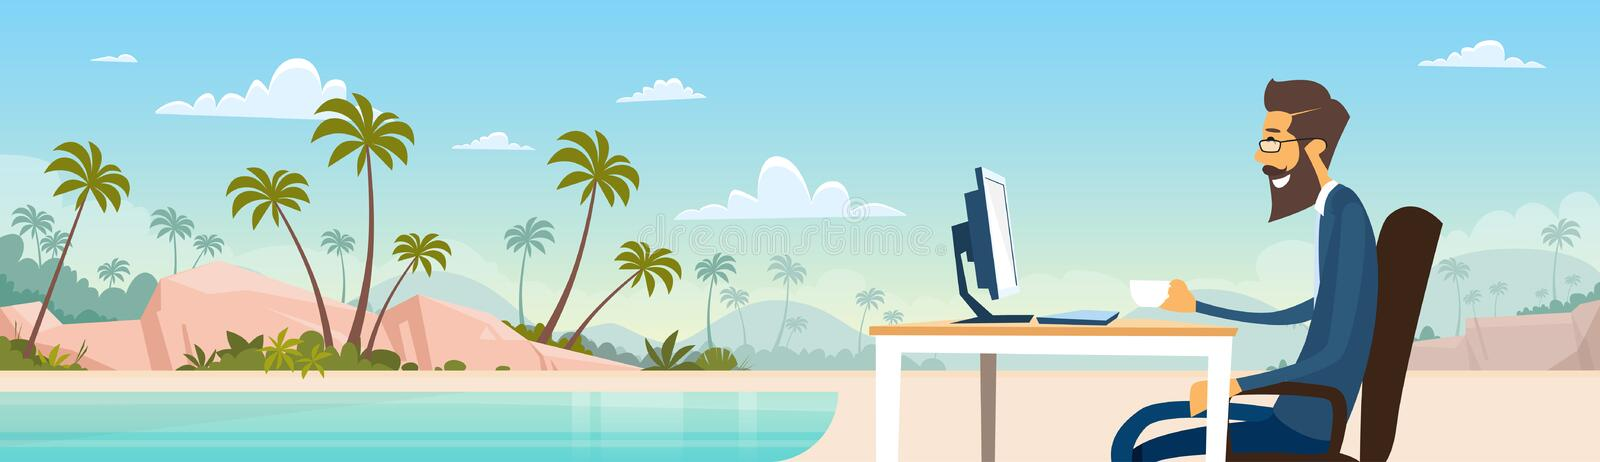 Business Man Freelance Remote Working Place Businessman In Suit Sit Desktop Beach Summer Vacation Tropical Island. Flat Vector Illustration vector illustration